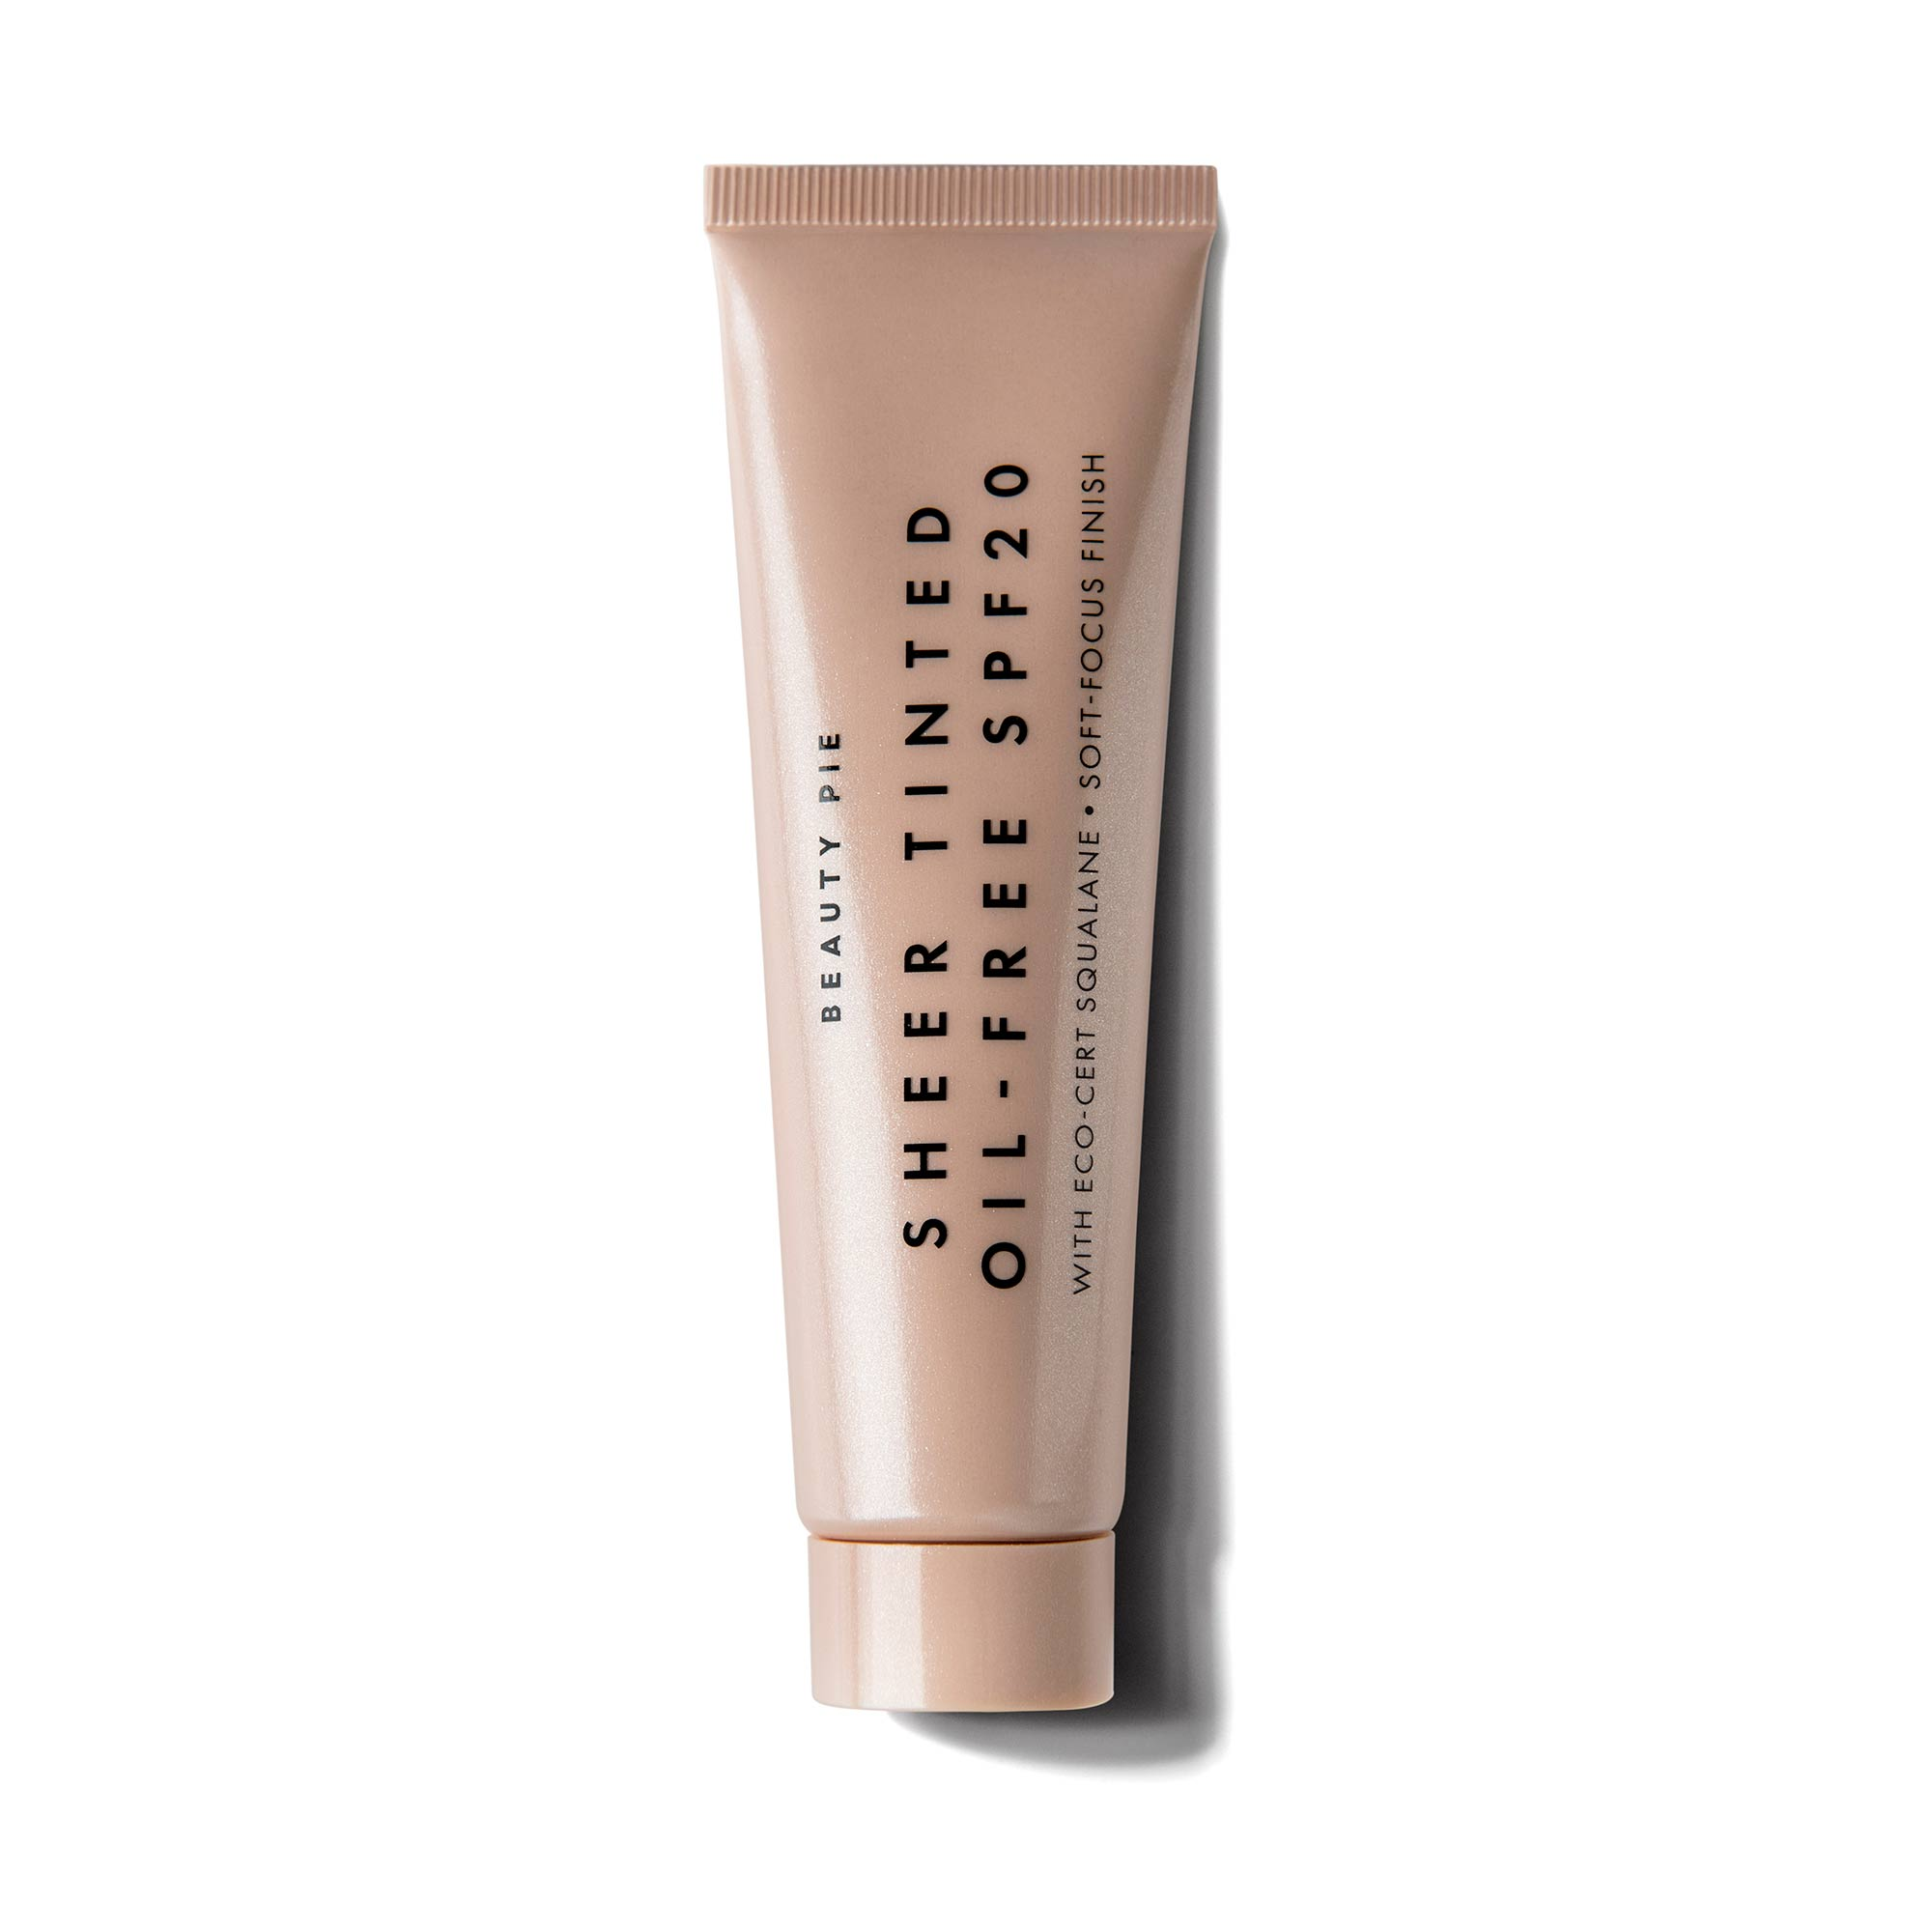 Super Healthy Skin™ Tinted SPF20 in Medium Deep by Beauty Pie